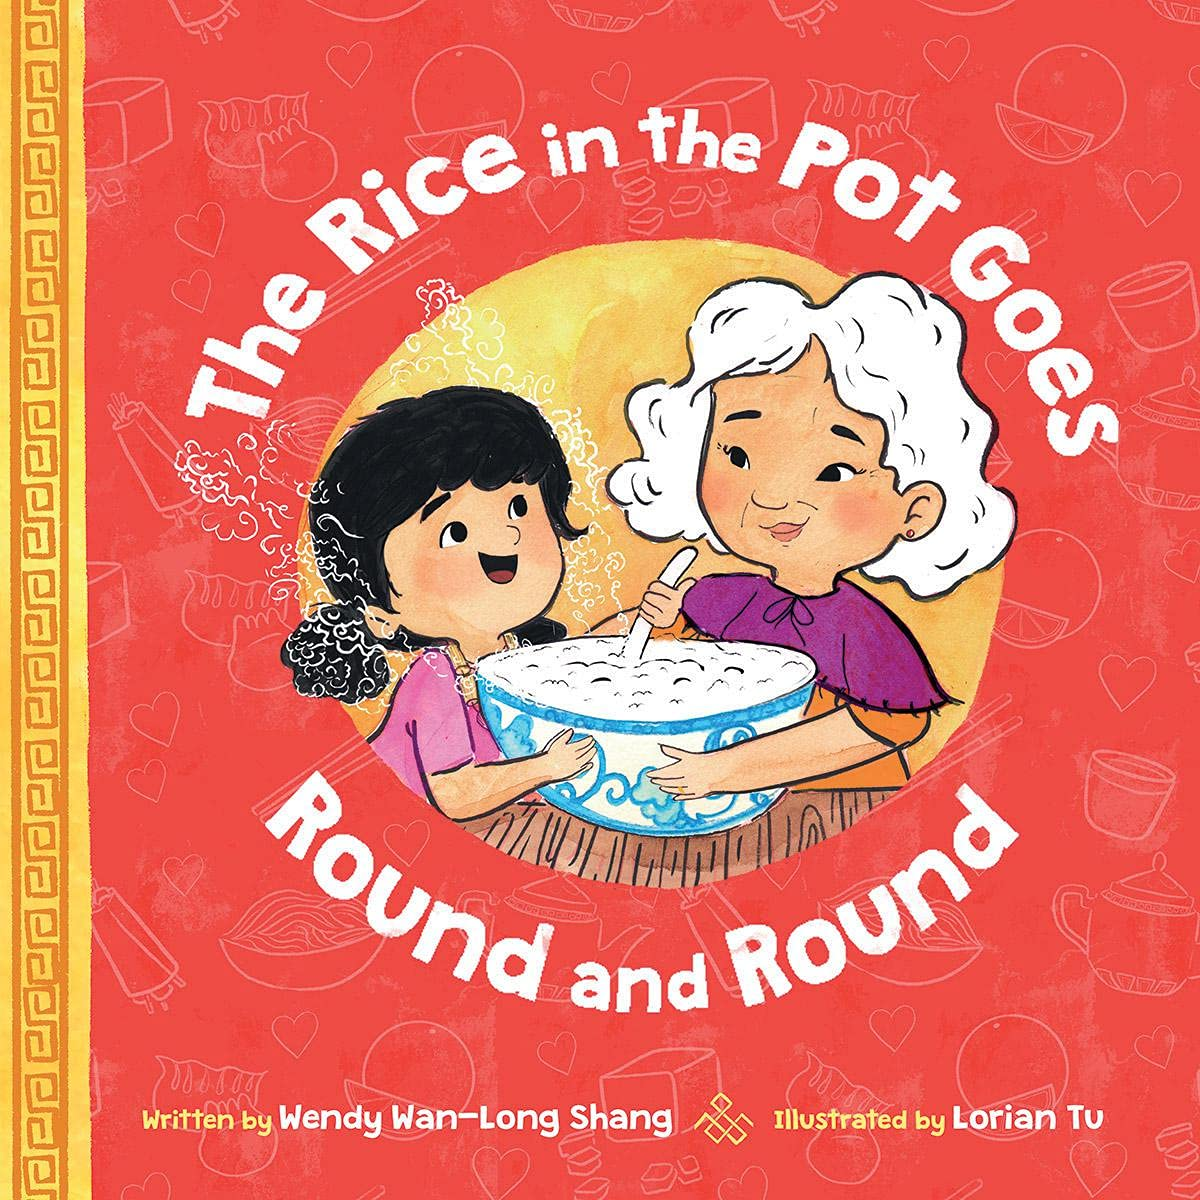 The Rice in the Pot Goes Round and Round: Shang, Wendy Wan-Long, Tu, Lorian: 9781338621198: Amazon.com: Books